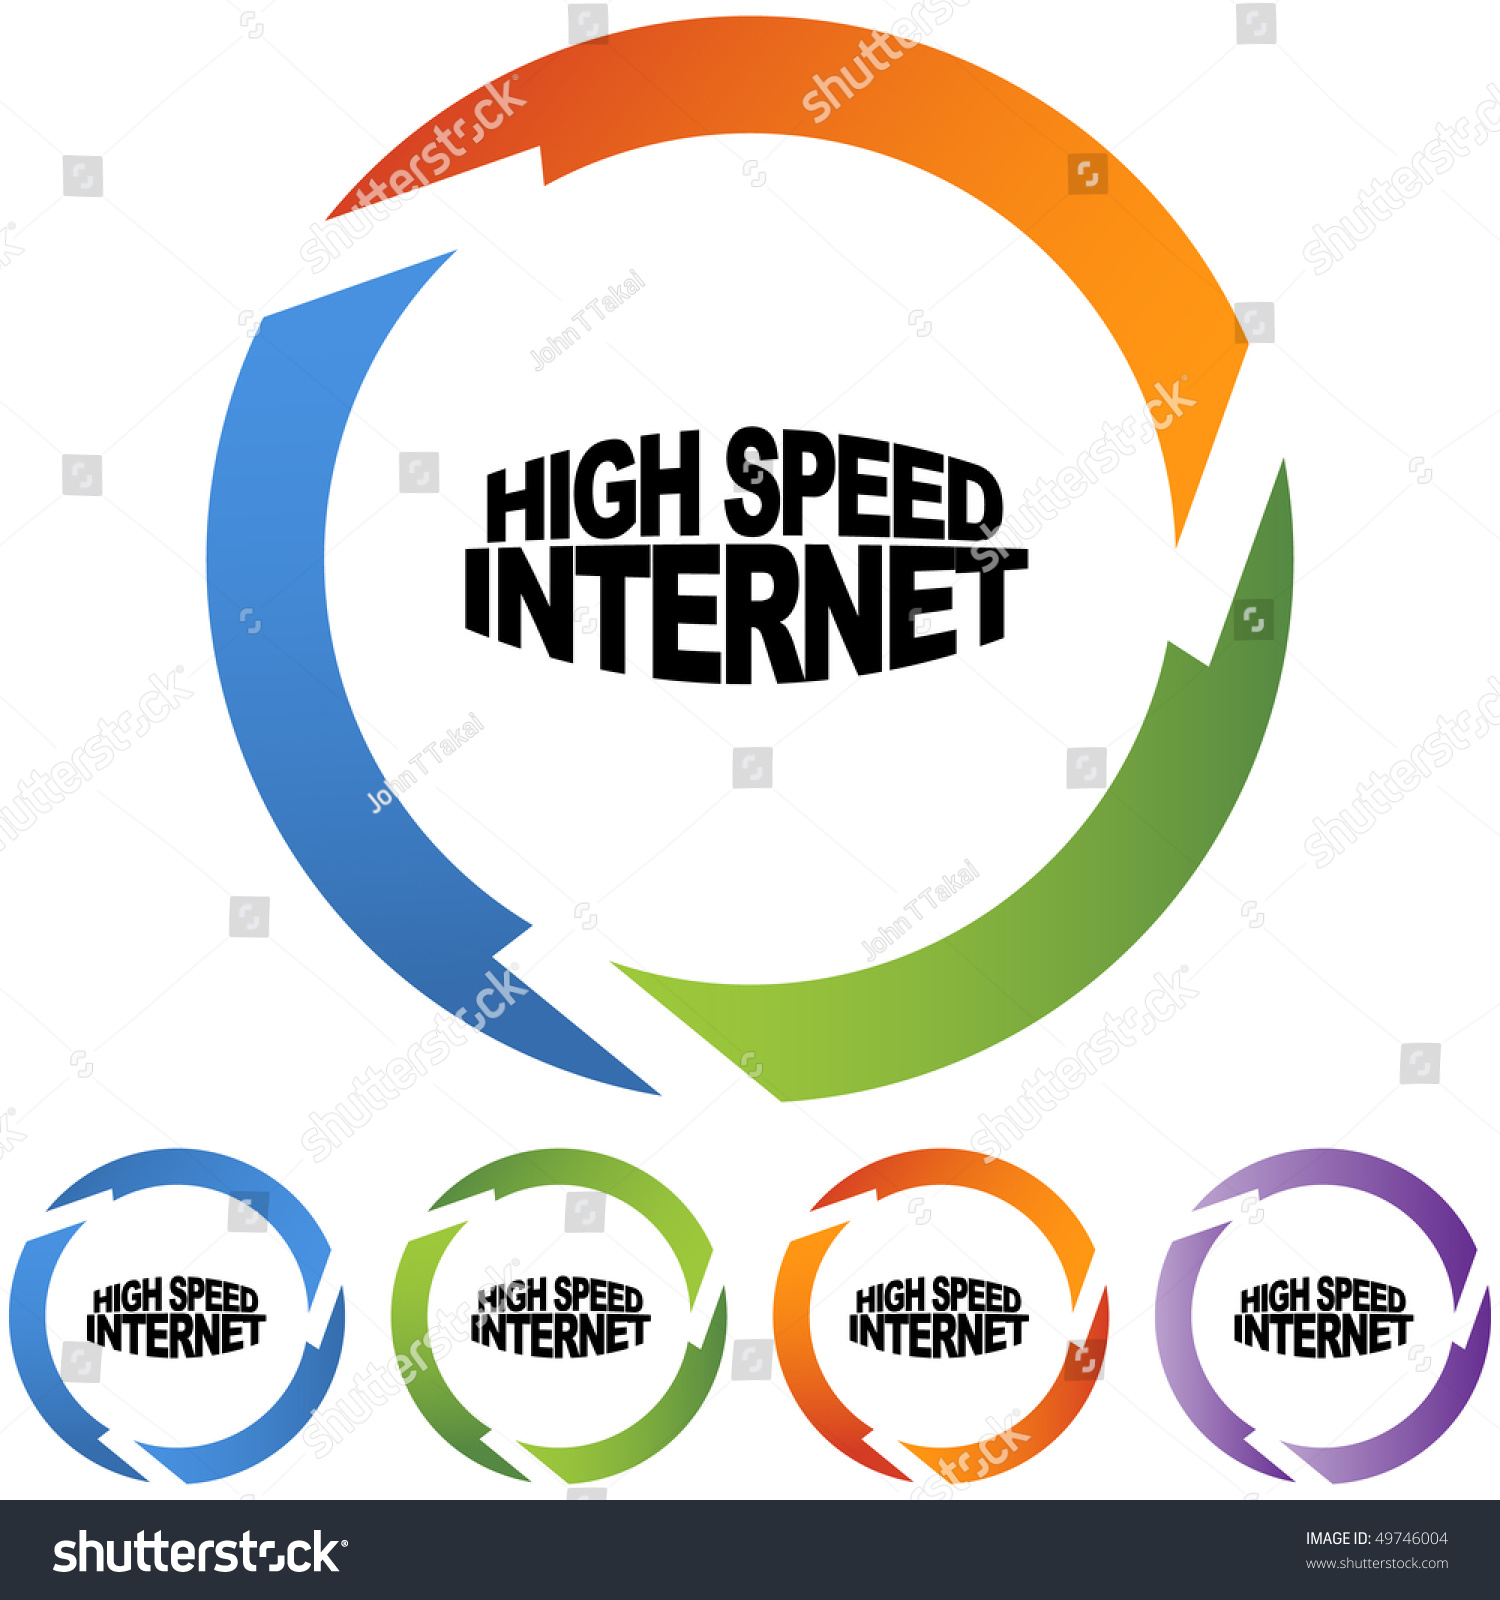 how to get high speed internet